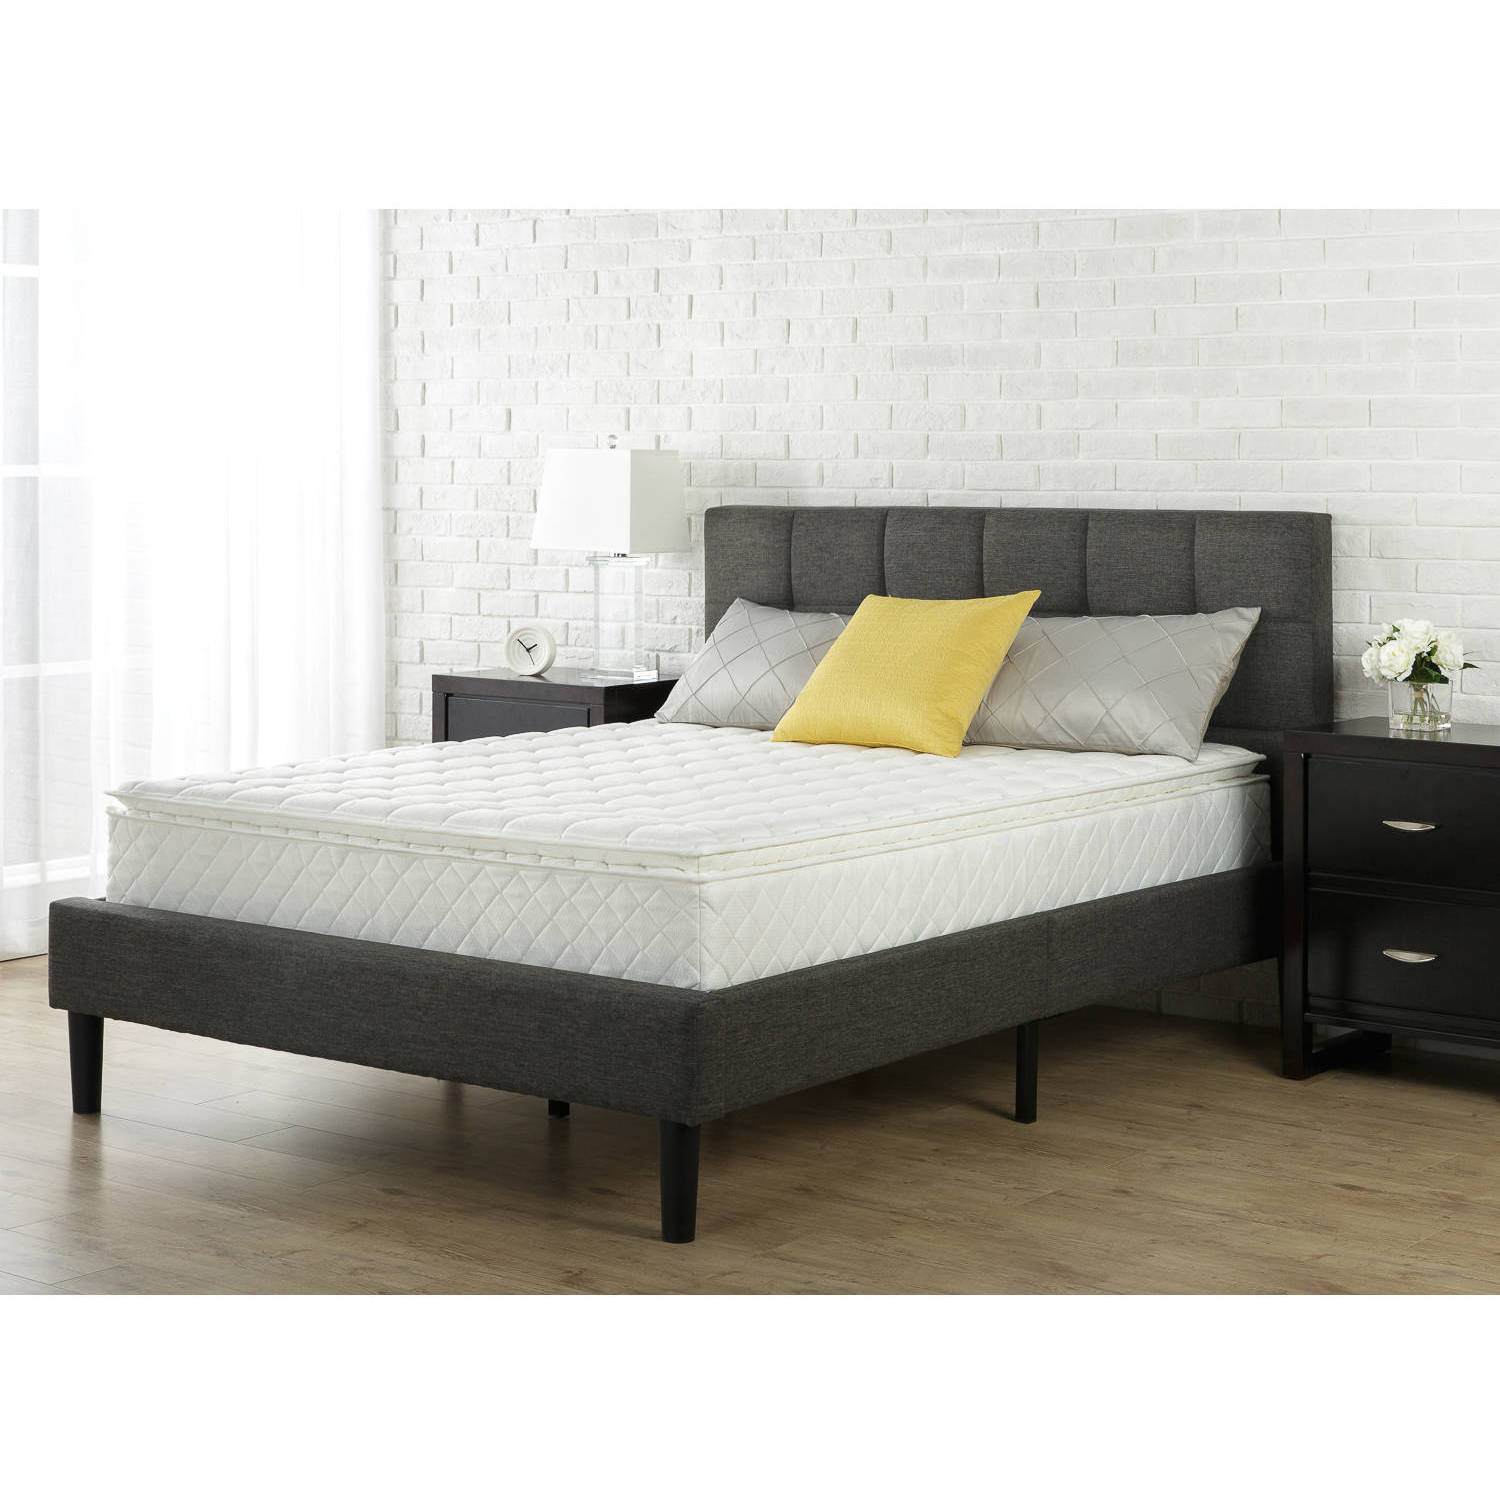 Slumber 1 - 10'' Dream Pillow Top Spring Mattress, Multiple Sizes